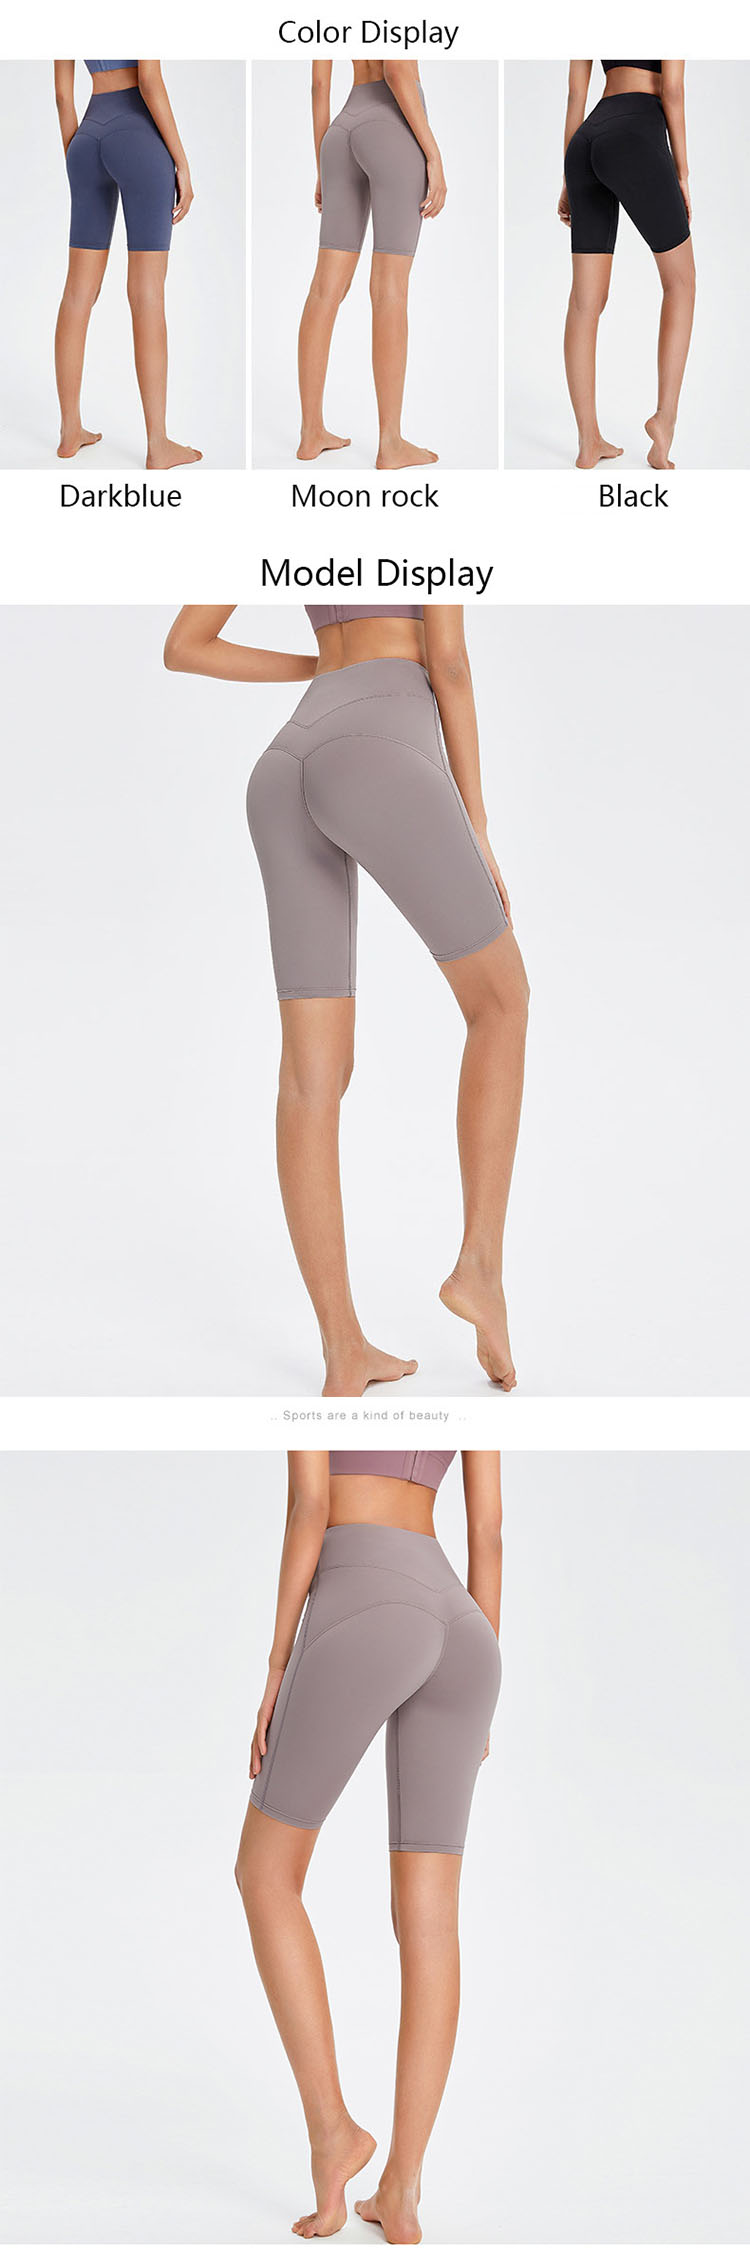 the shorts more attractive and extends the side slits. Make the visual effect more eye-catching.